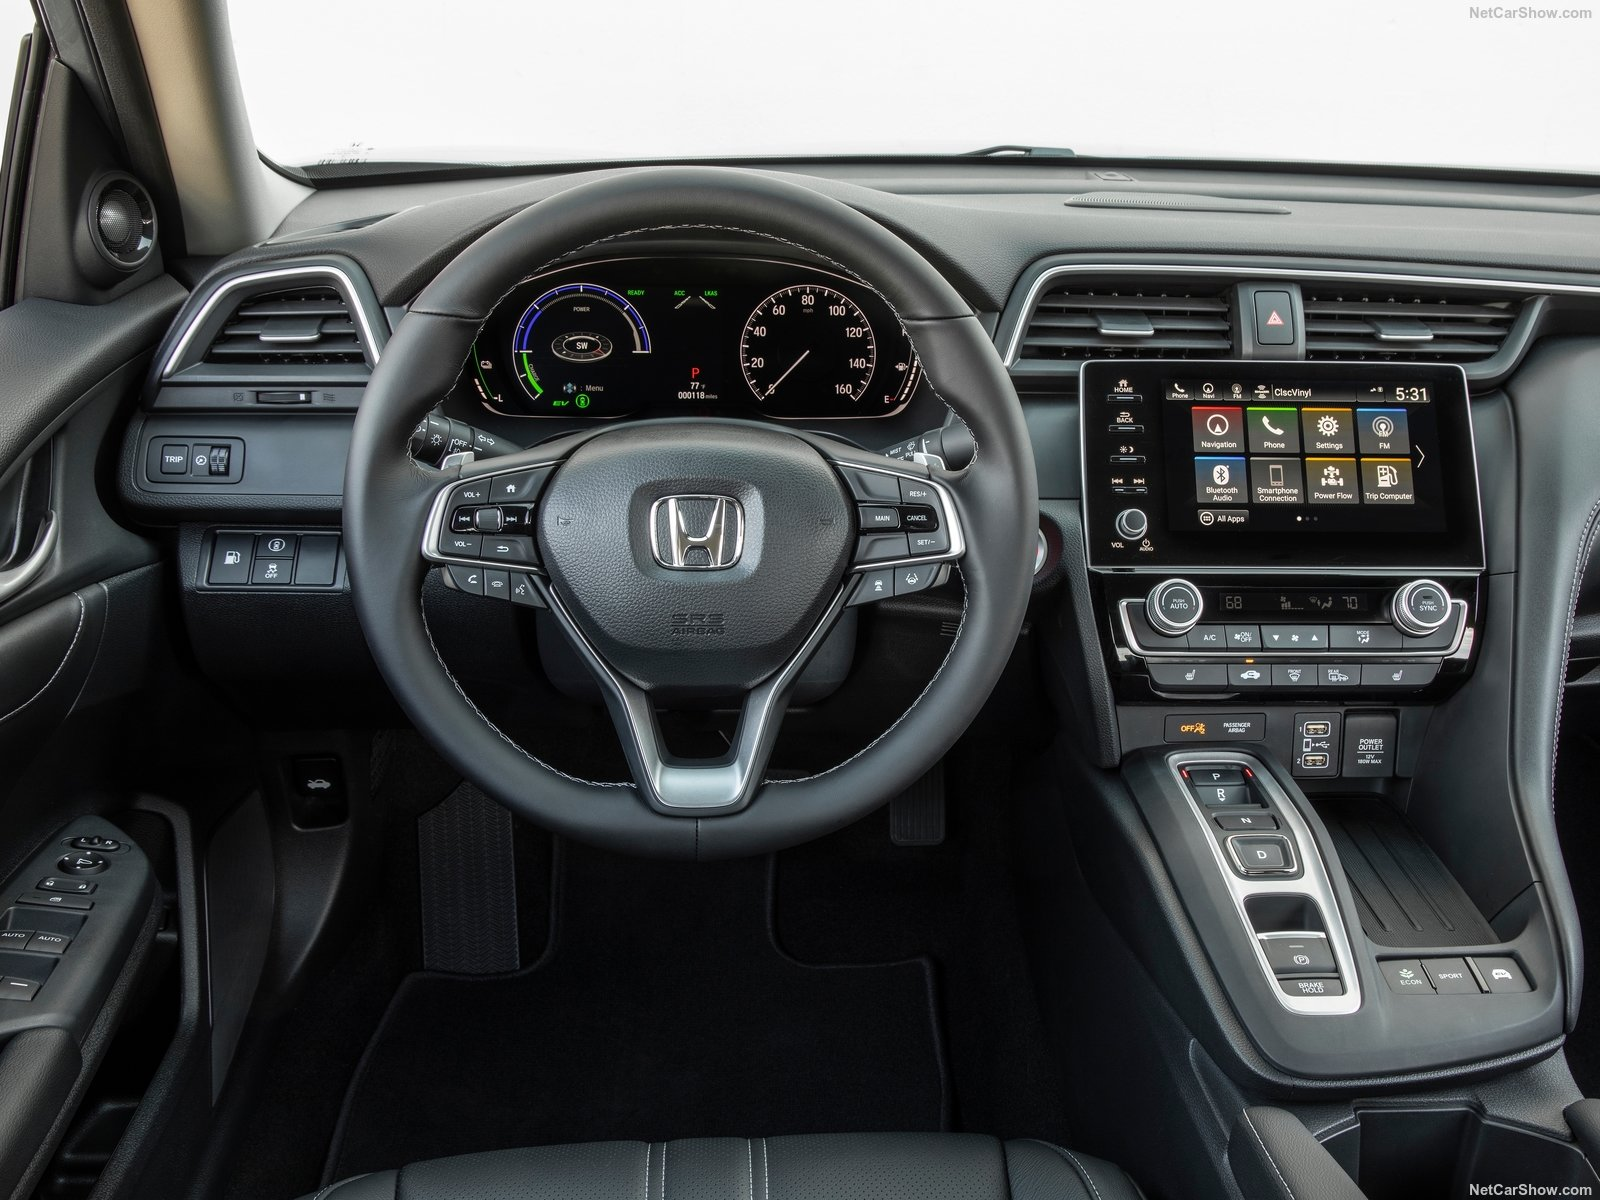 2019 Honda Insight: A value packed hybrid with no transmission - News/Articles/Motorists ...